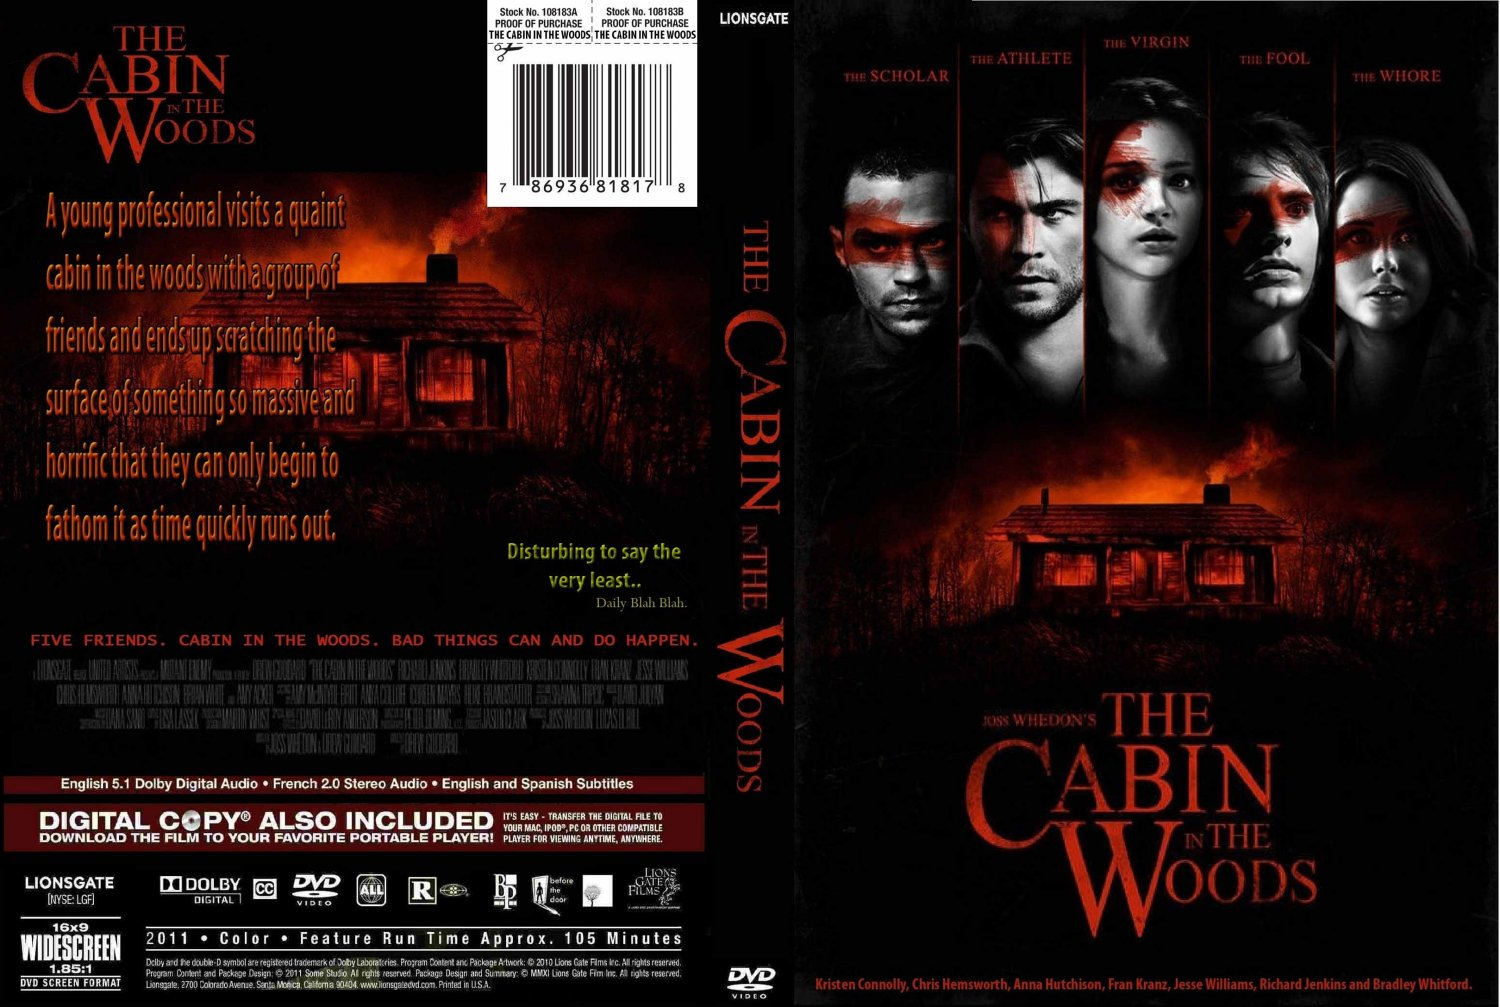 In the woods the cabin in the woods custom date 05 21 2012 size